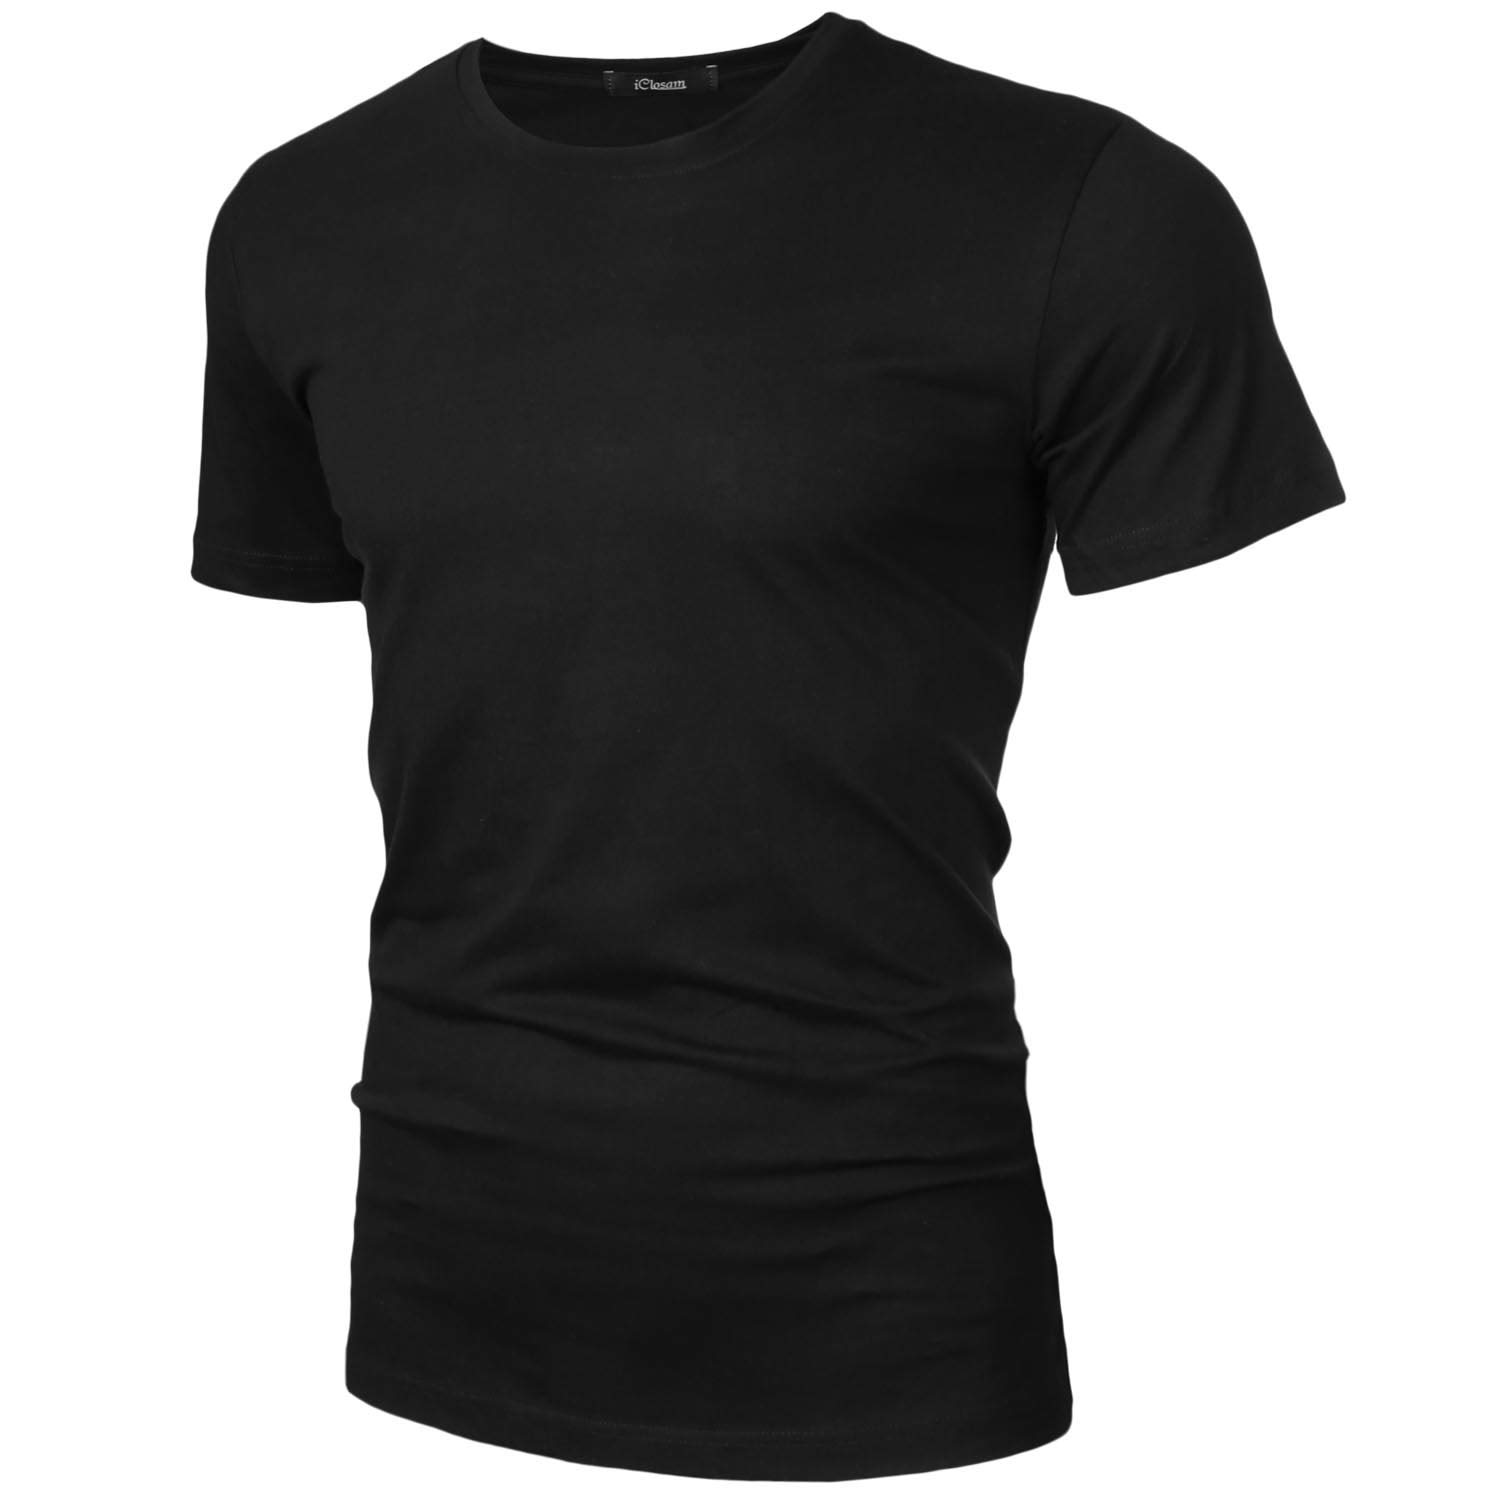 iClosam Men's Short Sleeve T-Shirt Crewneck Basic Solid Henley Tee T-Shirts Black by iClosam (Image #2)